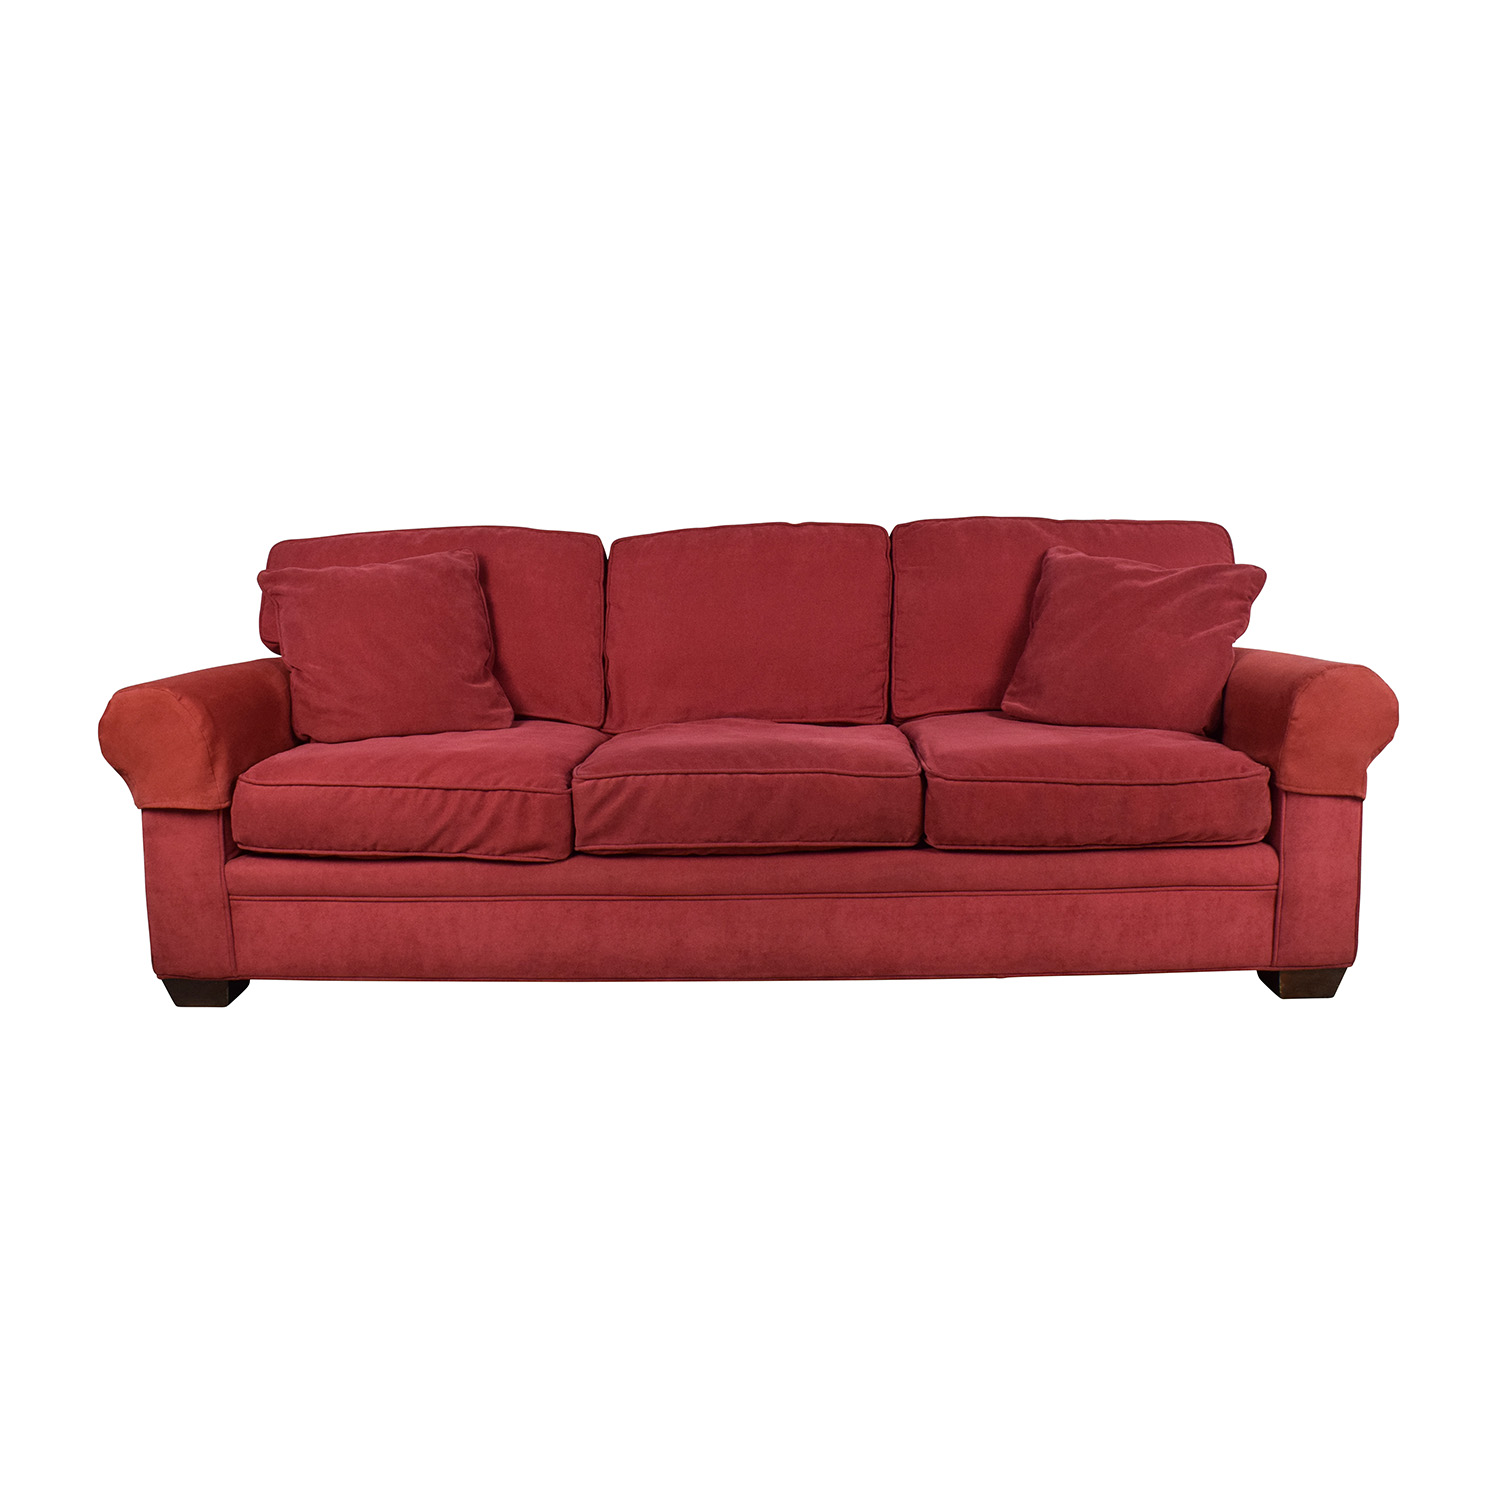 Crate And Barrel Microfiber Suede Burgundy Couch Red